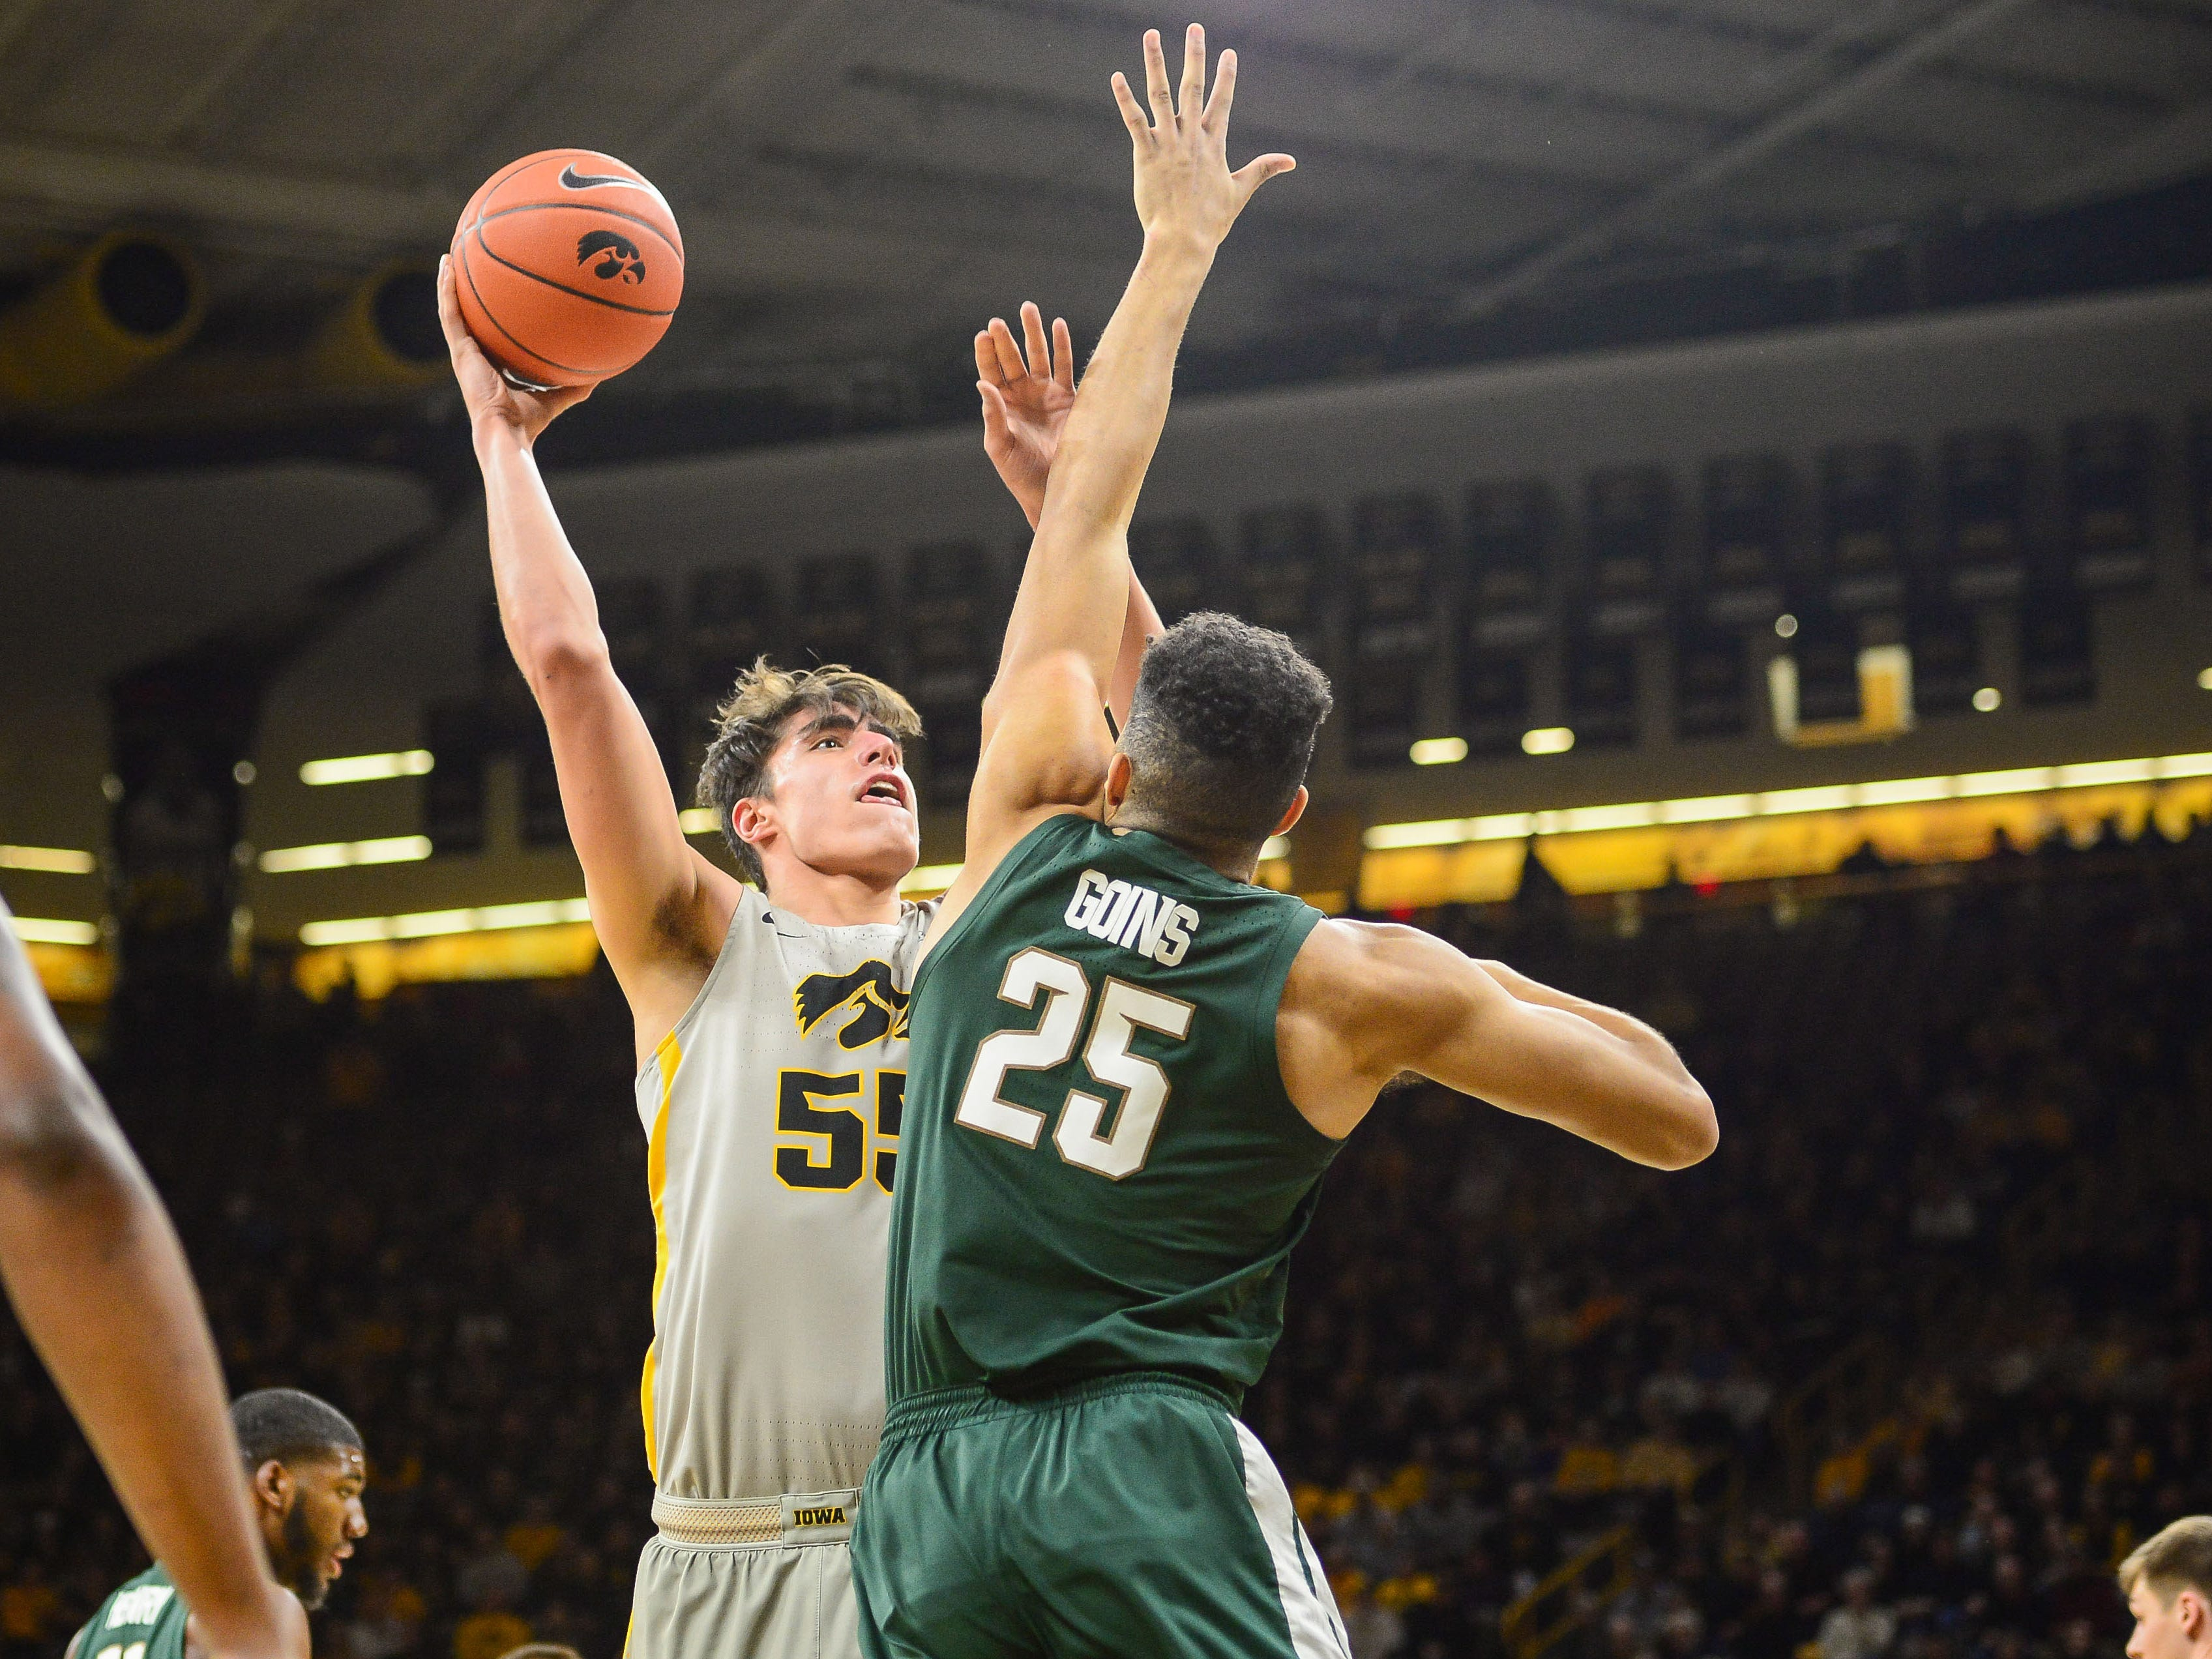 Iowa Hawkeyes forward Luka Garza (55) shoots the ball over Michigan State Spartans forward Kenny Goins (25) during the first half at Carver-Hawkeye Arena.